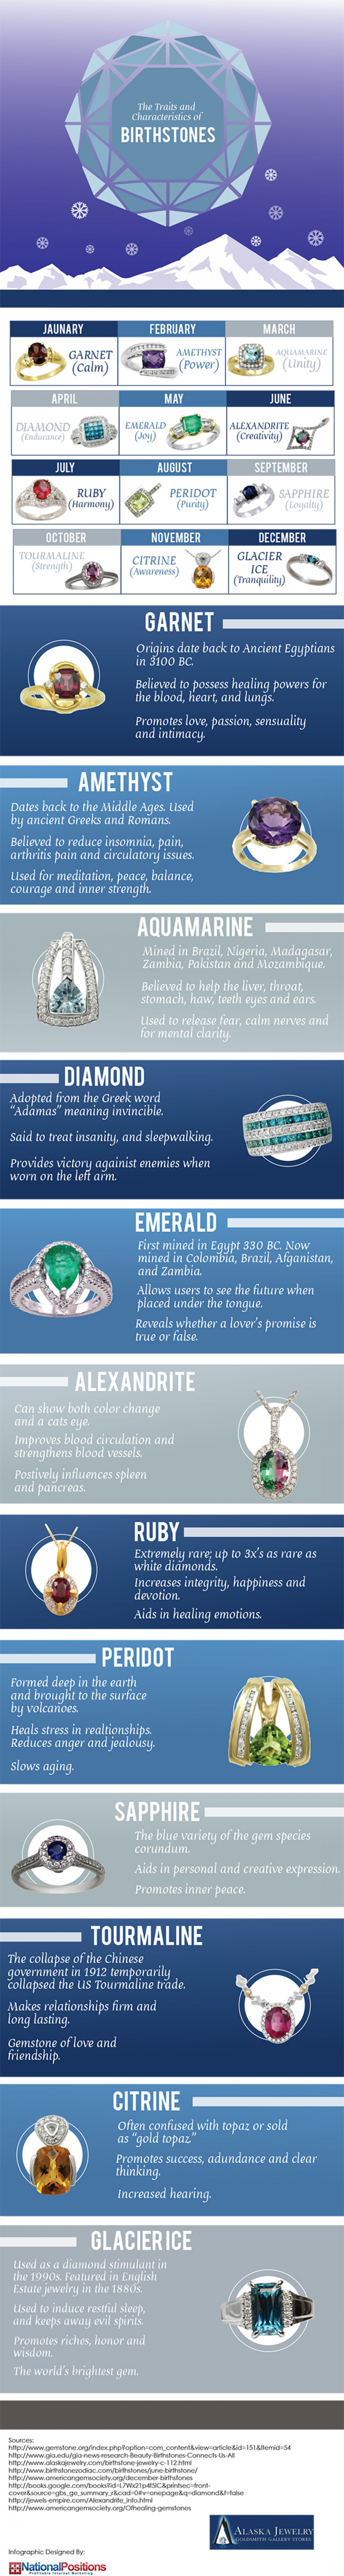 Traits and Characteristics of Birthstones Infographic